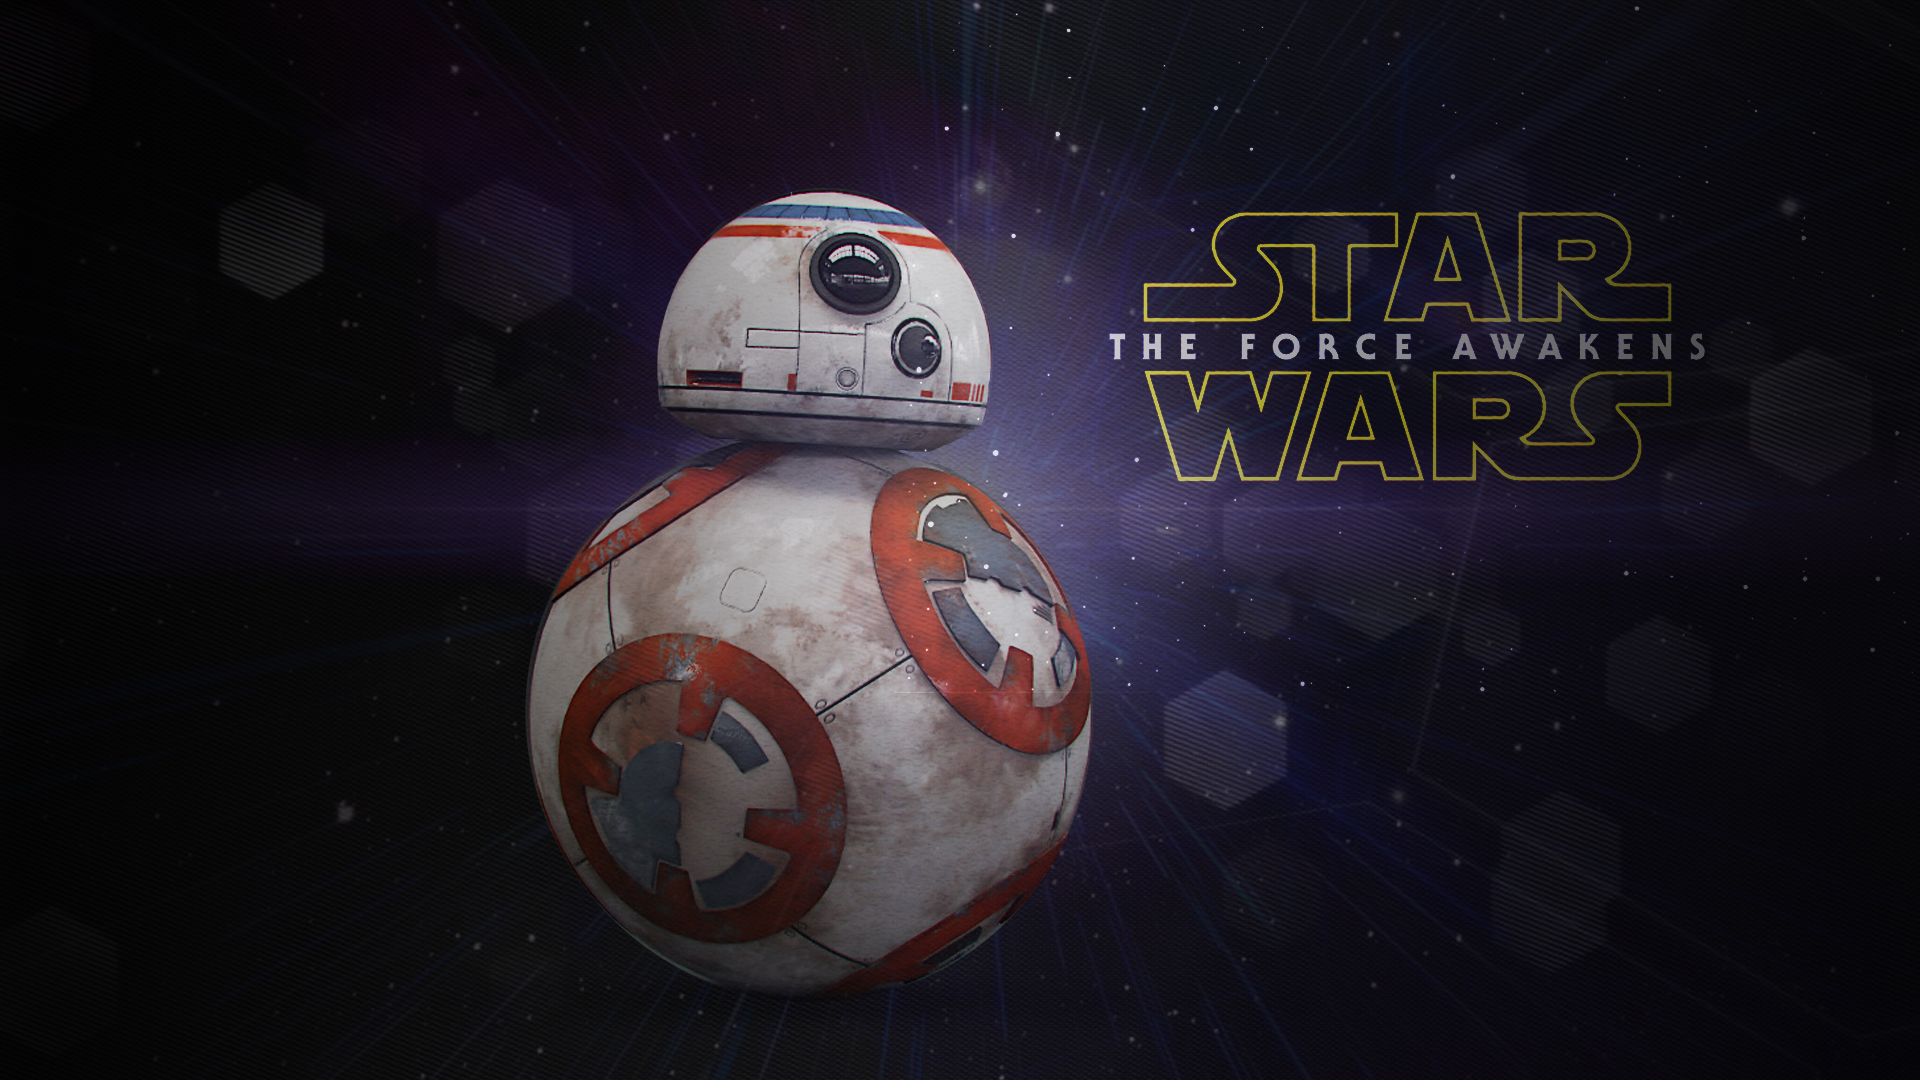 star wars the force awakens bb8 (16:9) 1080p by xsas7 on deviantart